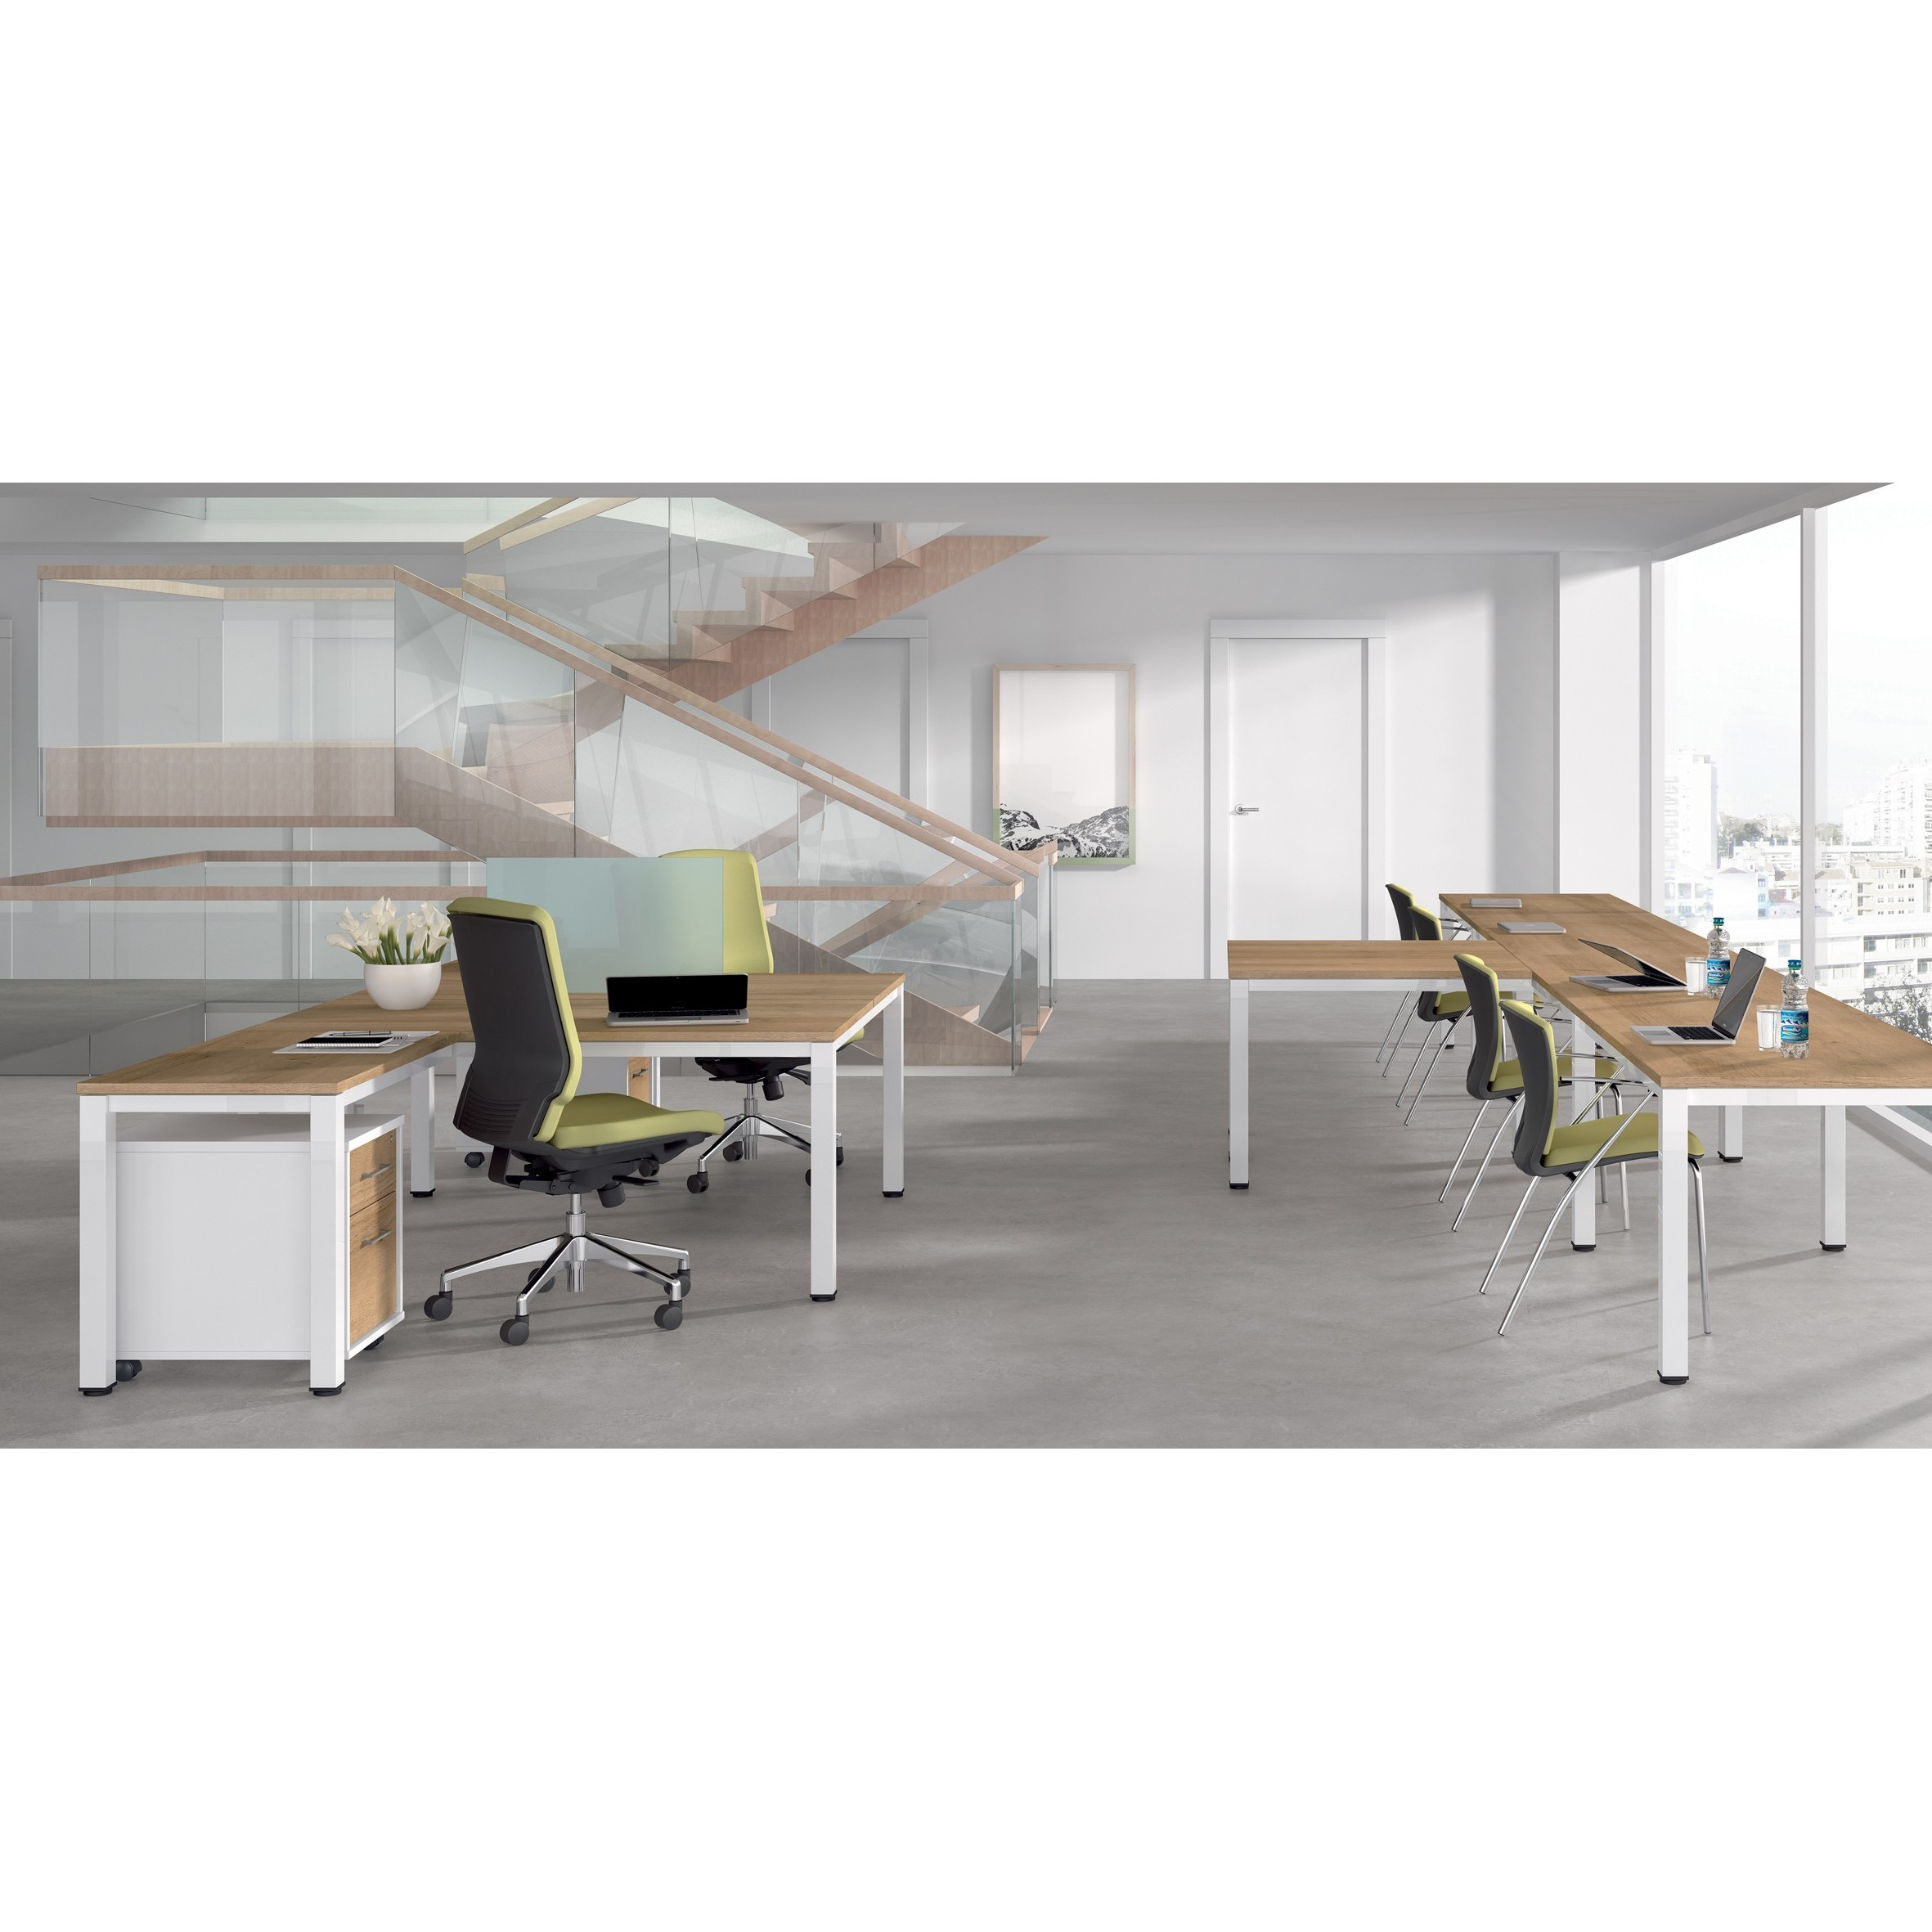 TABLE OFFICE 'S EXECUTIVE SERIES 120X60 WHITE/BEECH